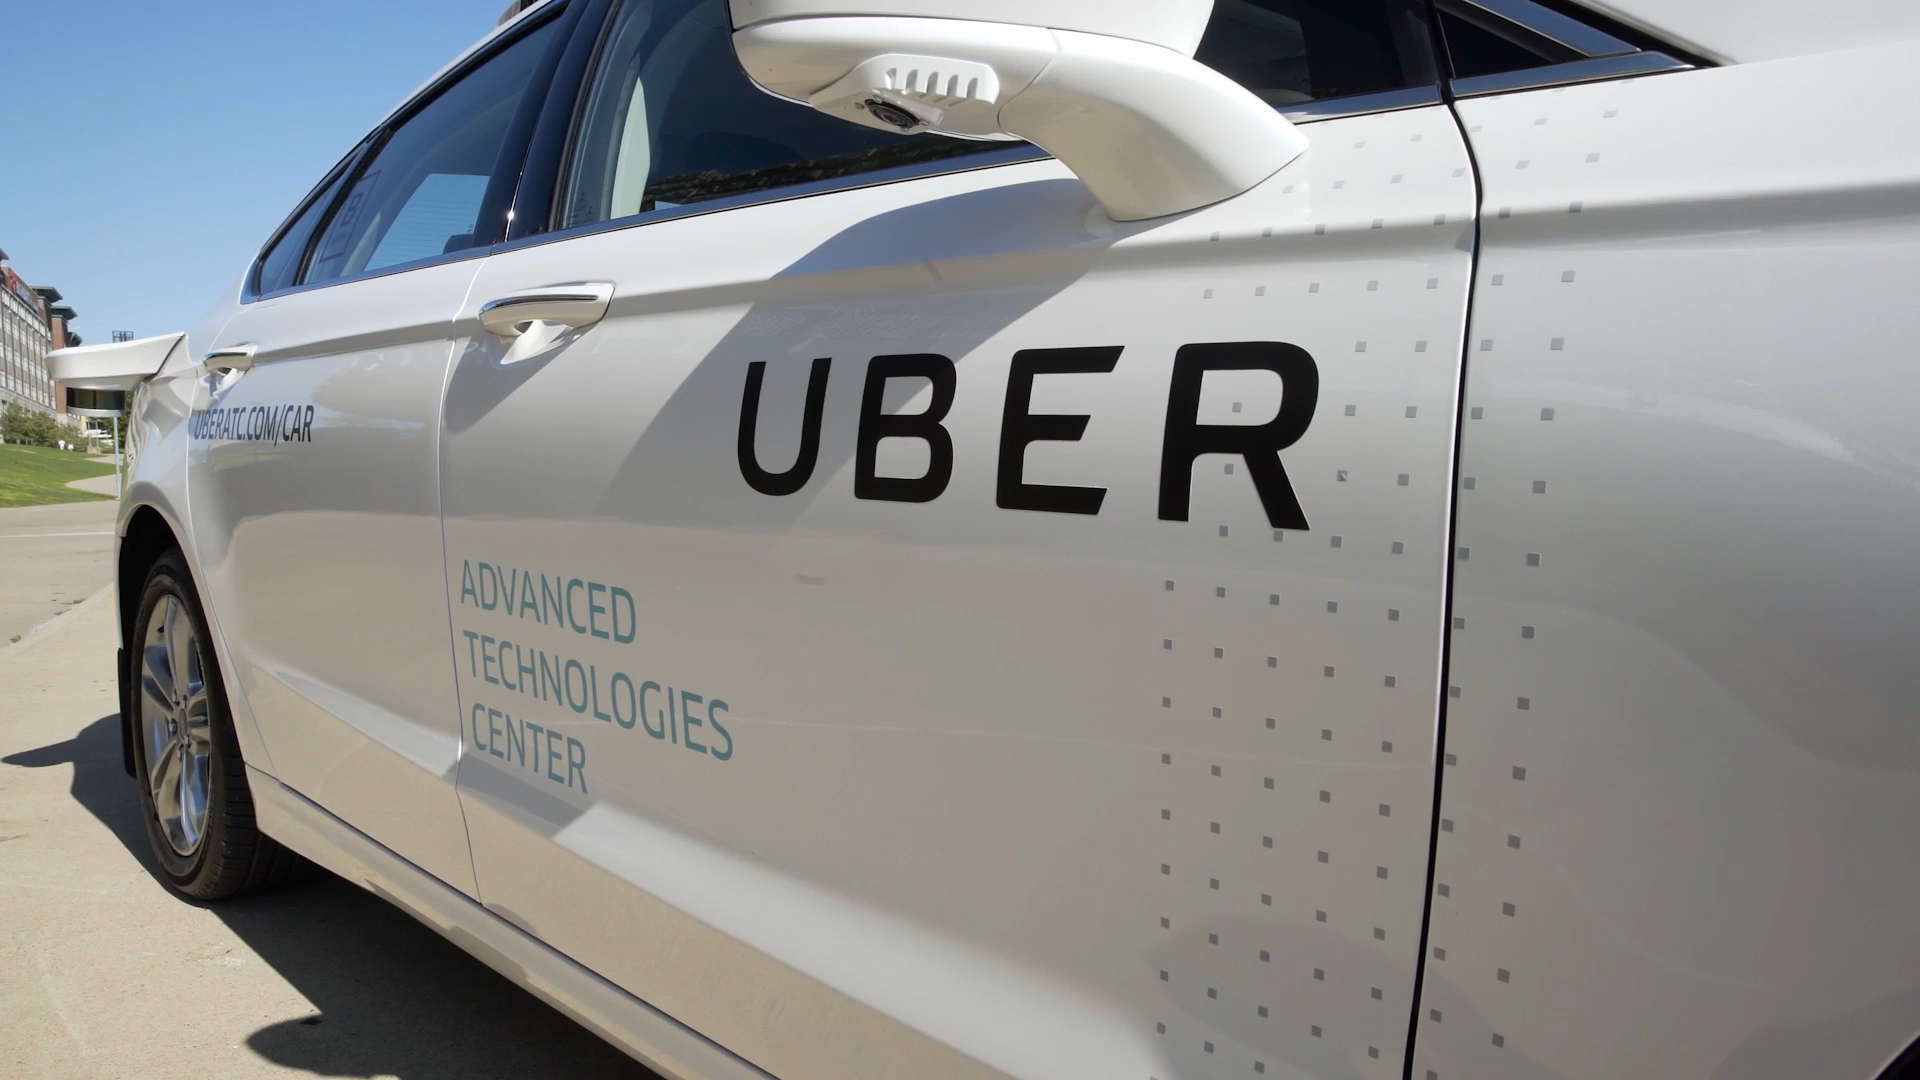 some experts claimed they are experts in the taxicab industry